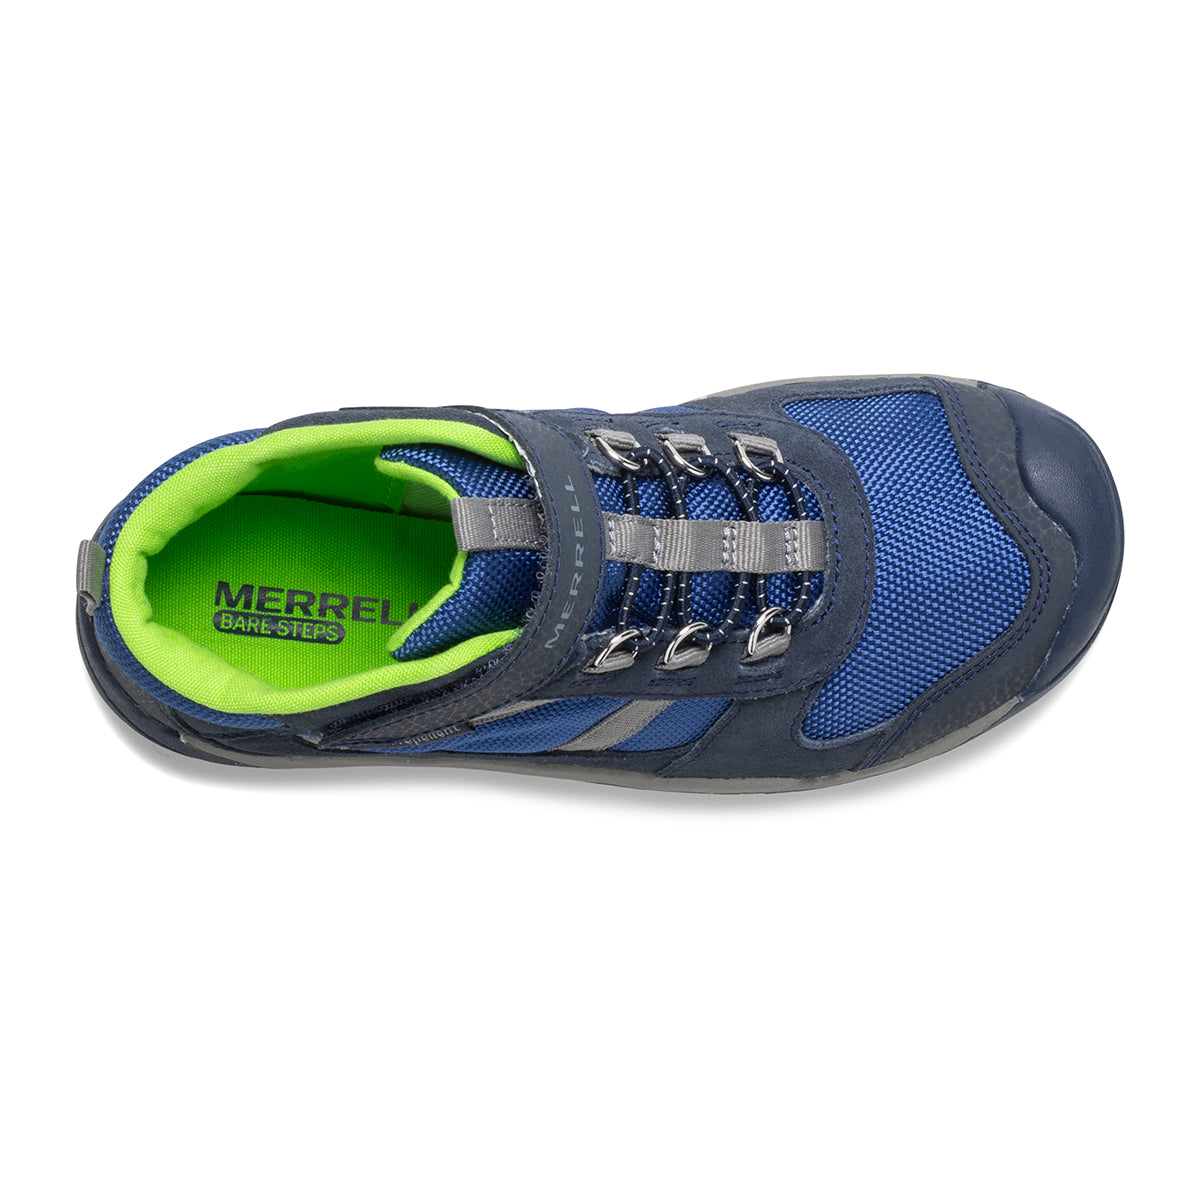 Merrell Kids Bare Steps Ridge Boot - Navy/Green